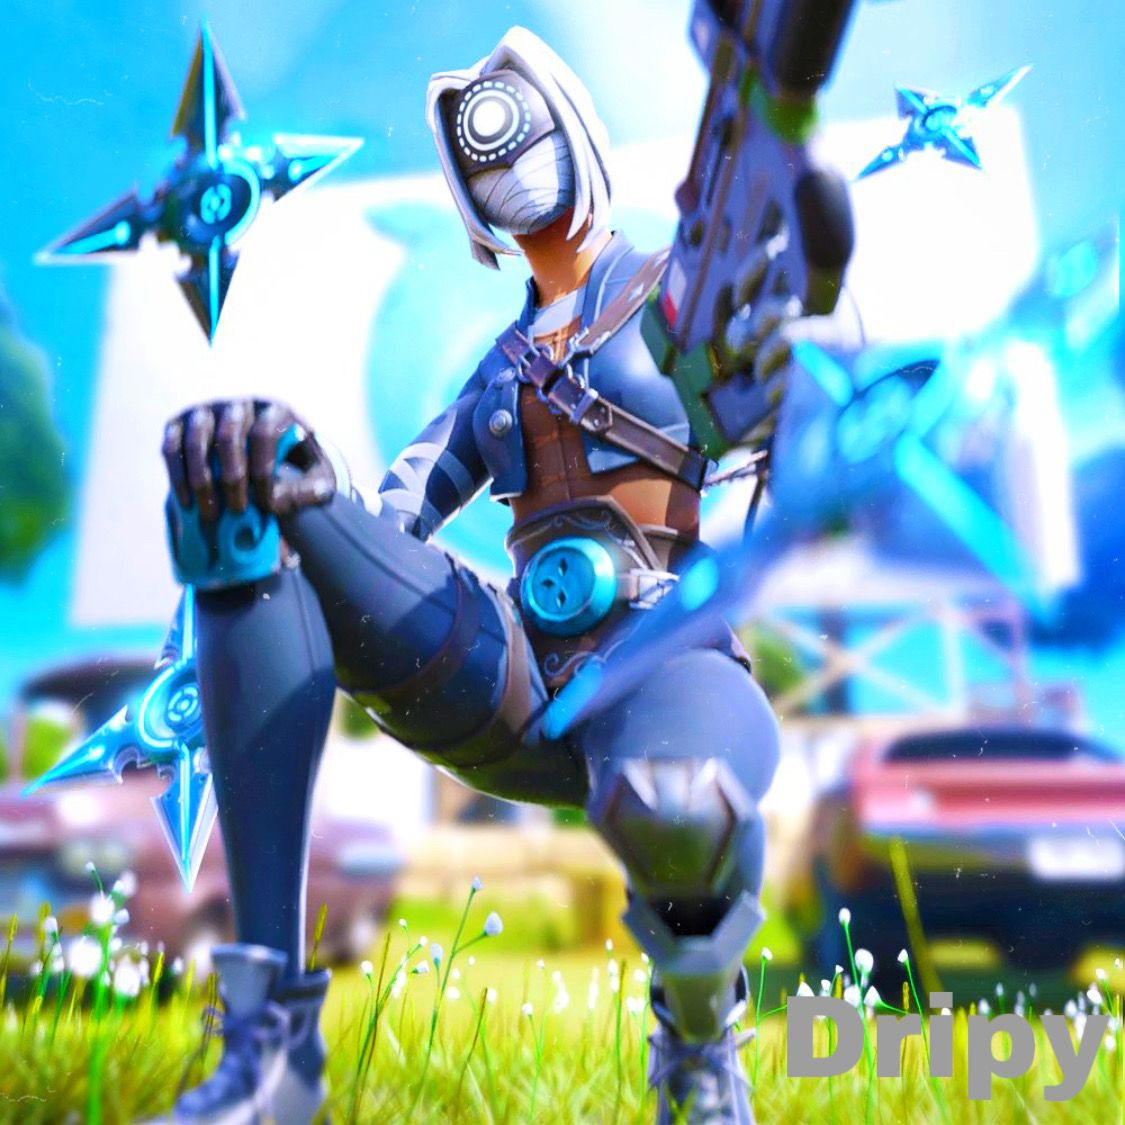 Fortnite Fortnitelogo Fortnitebattleroyale Fortnitebackground Marvel Superhero Posters Deadpool Pictures Photo Logo Design